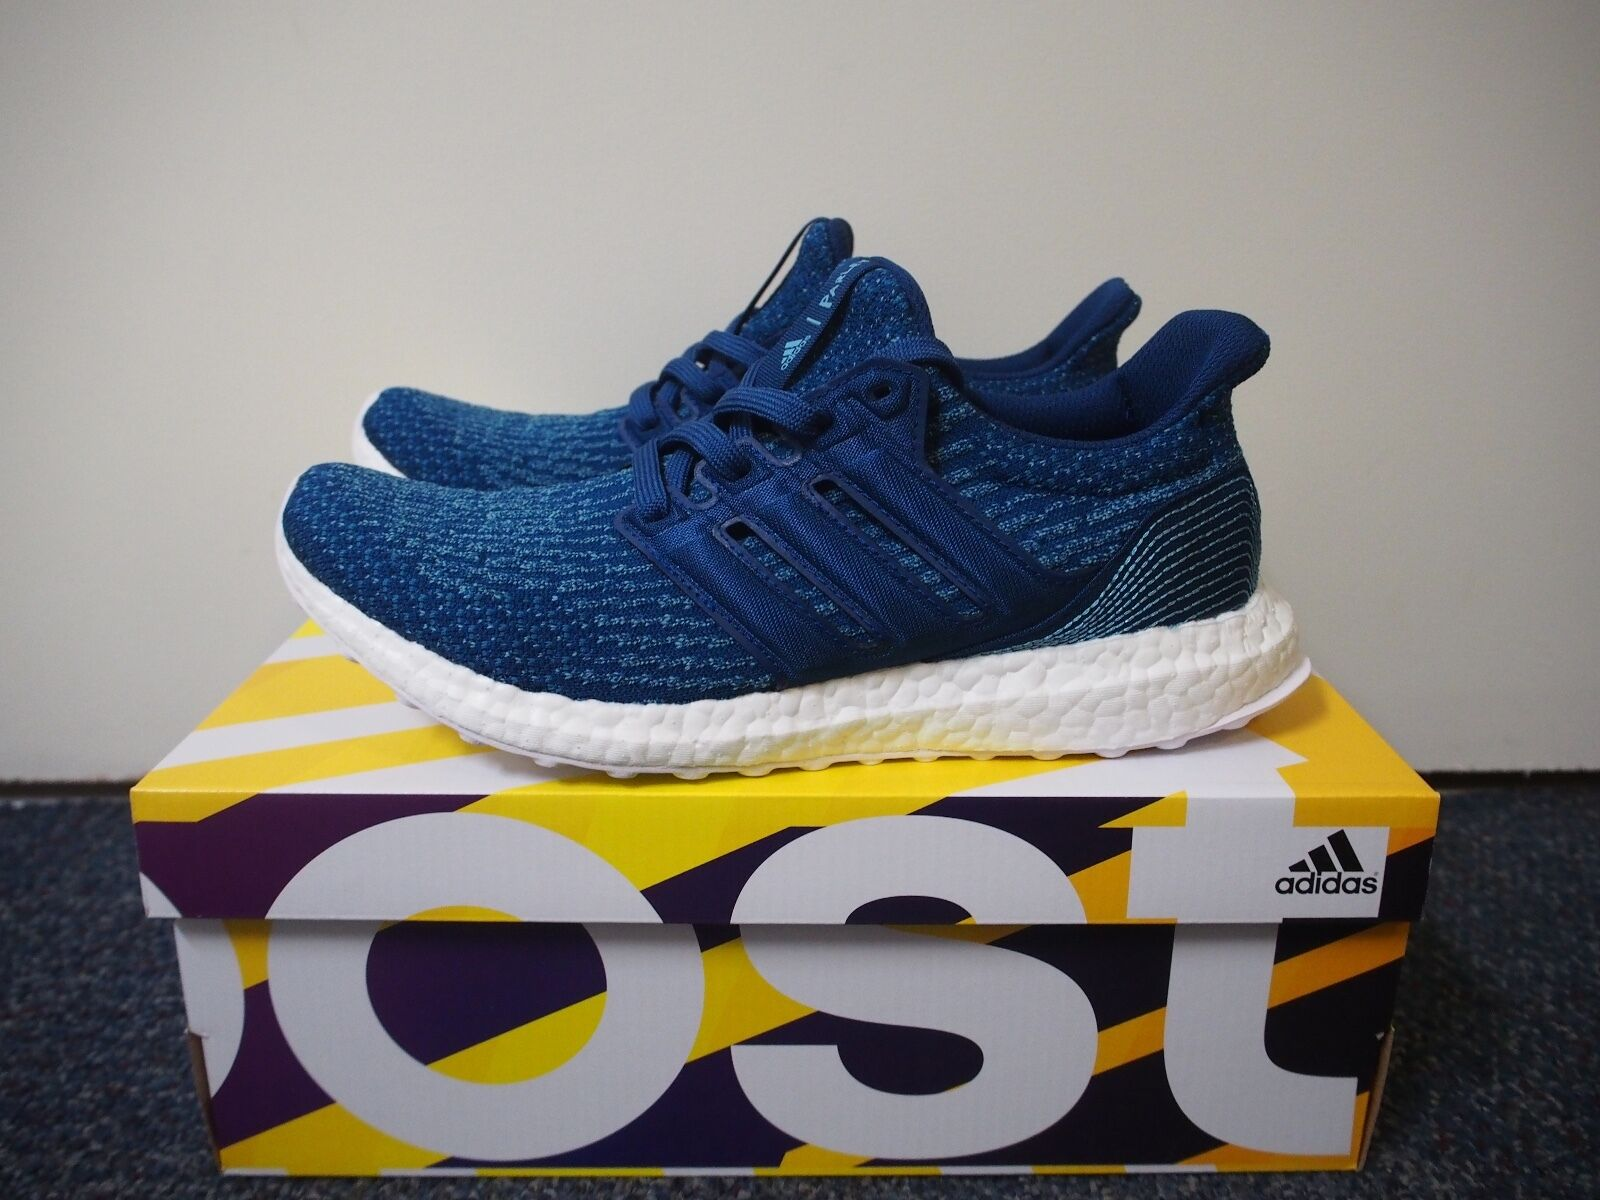 adidas ultra boost 3.0 parley Blue 100% authentic brand new US 8.5